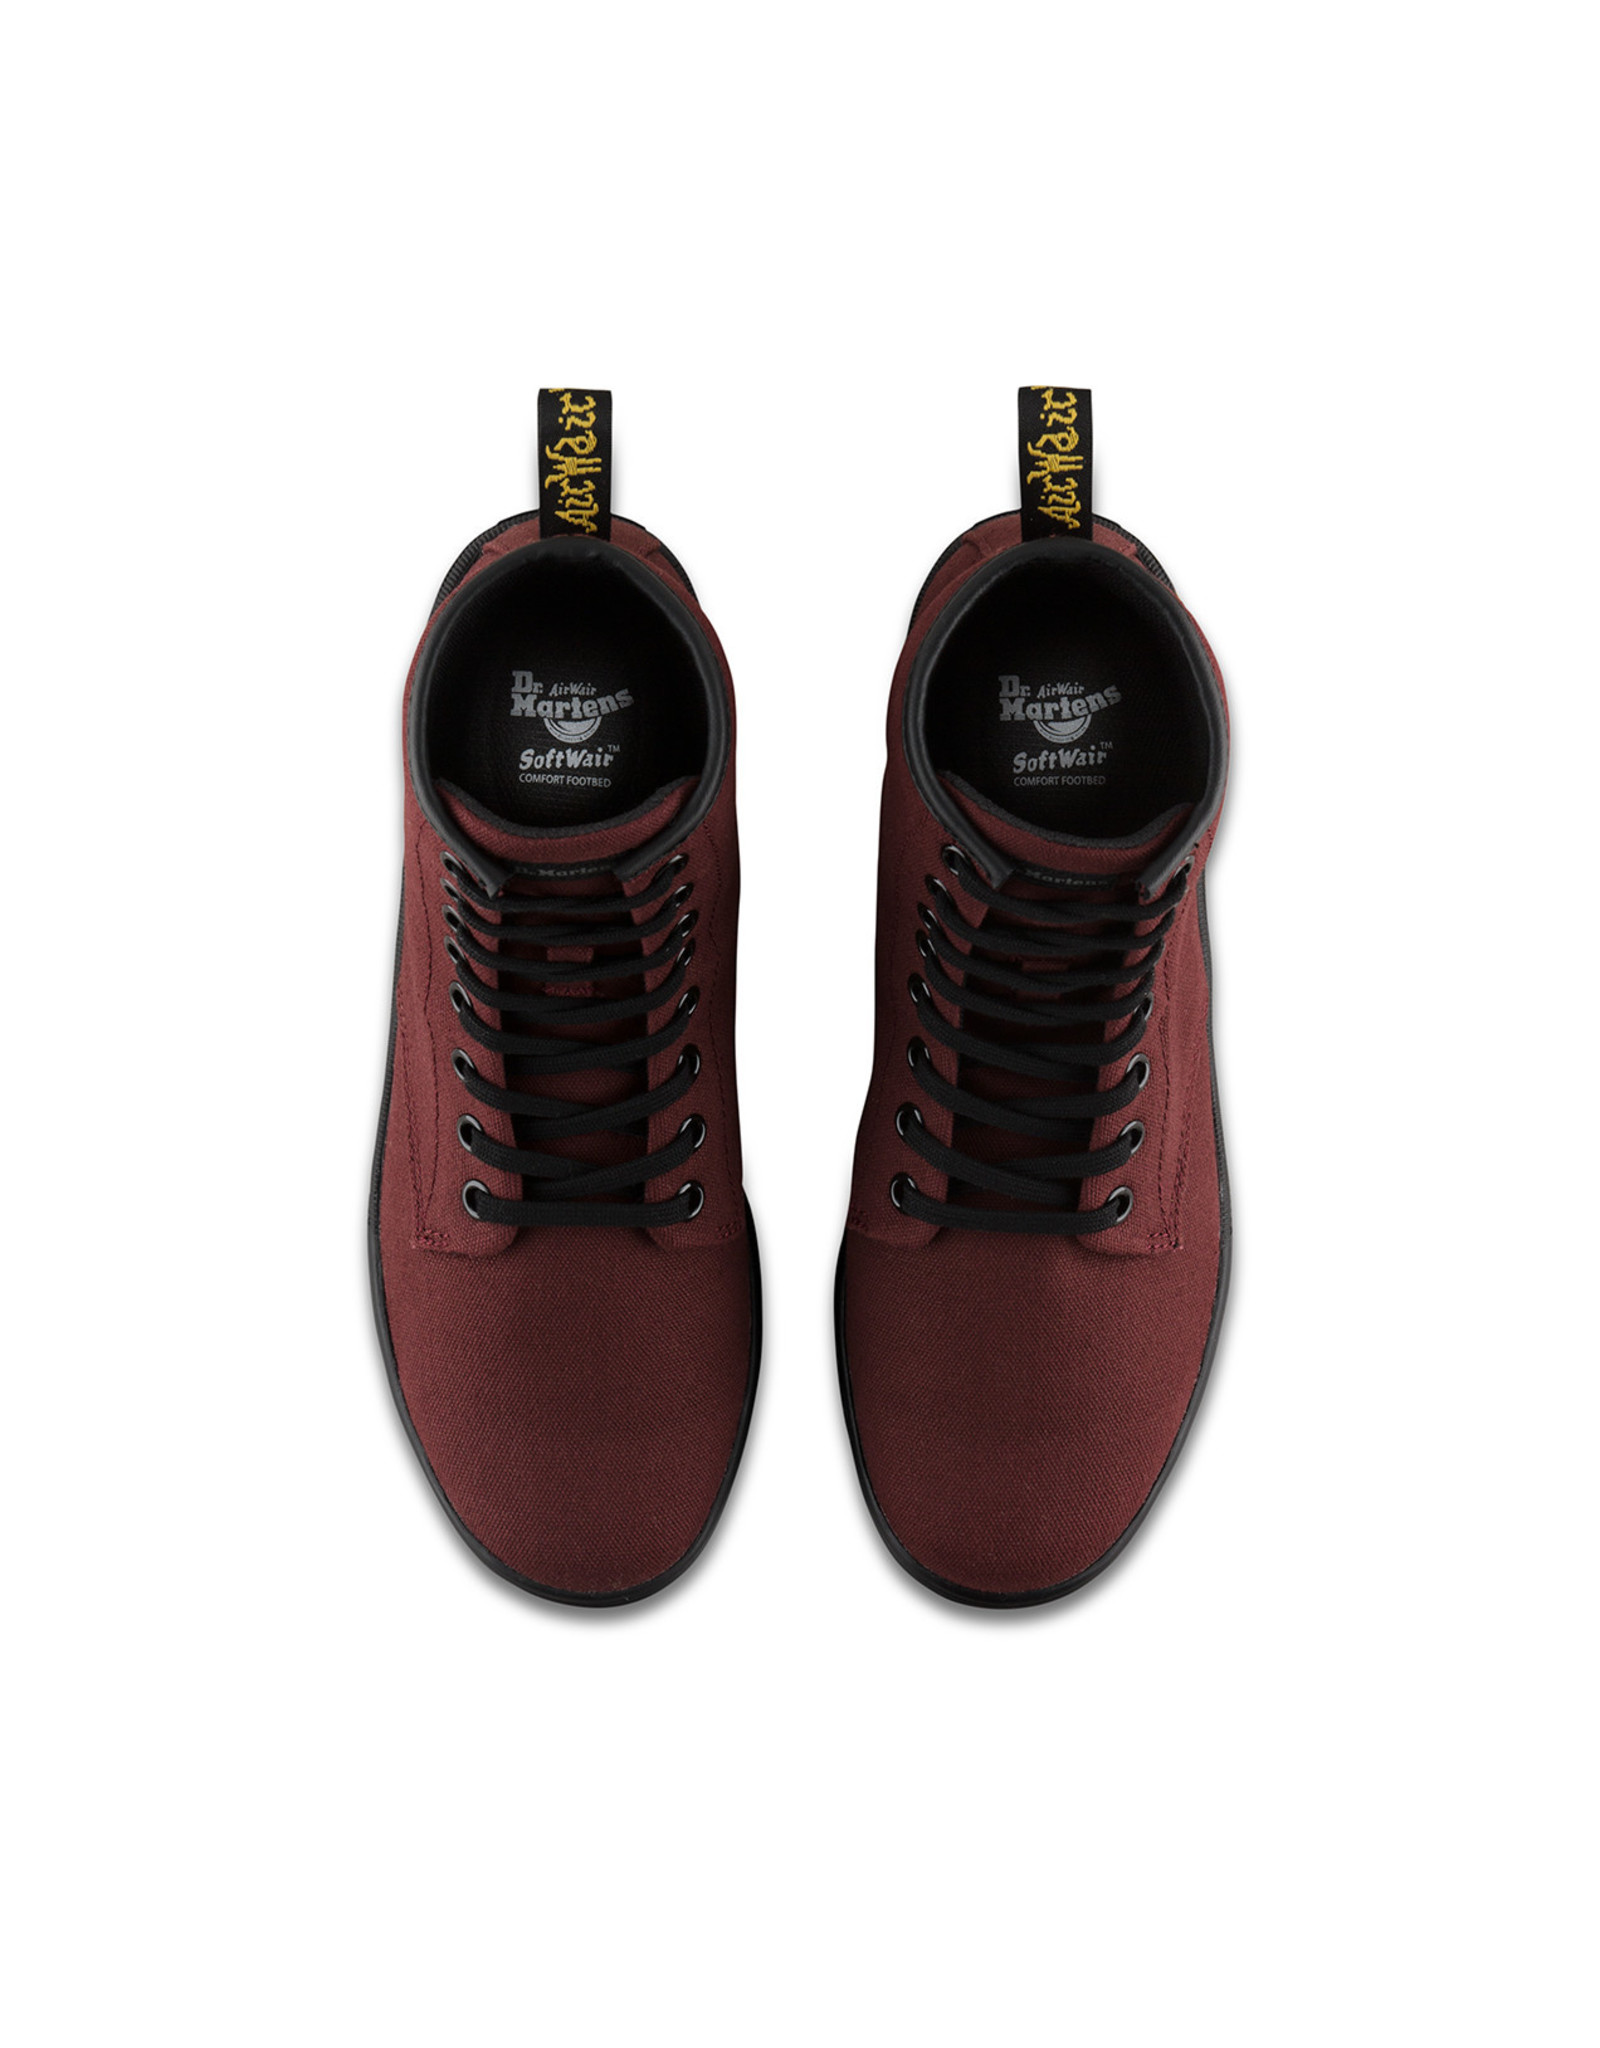 DR. MARTENS SHERIDAN OLD OXBLOOD CANVAS 826OX-R24314626